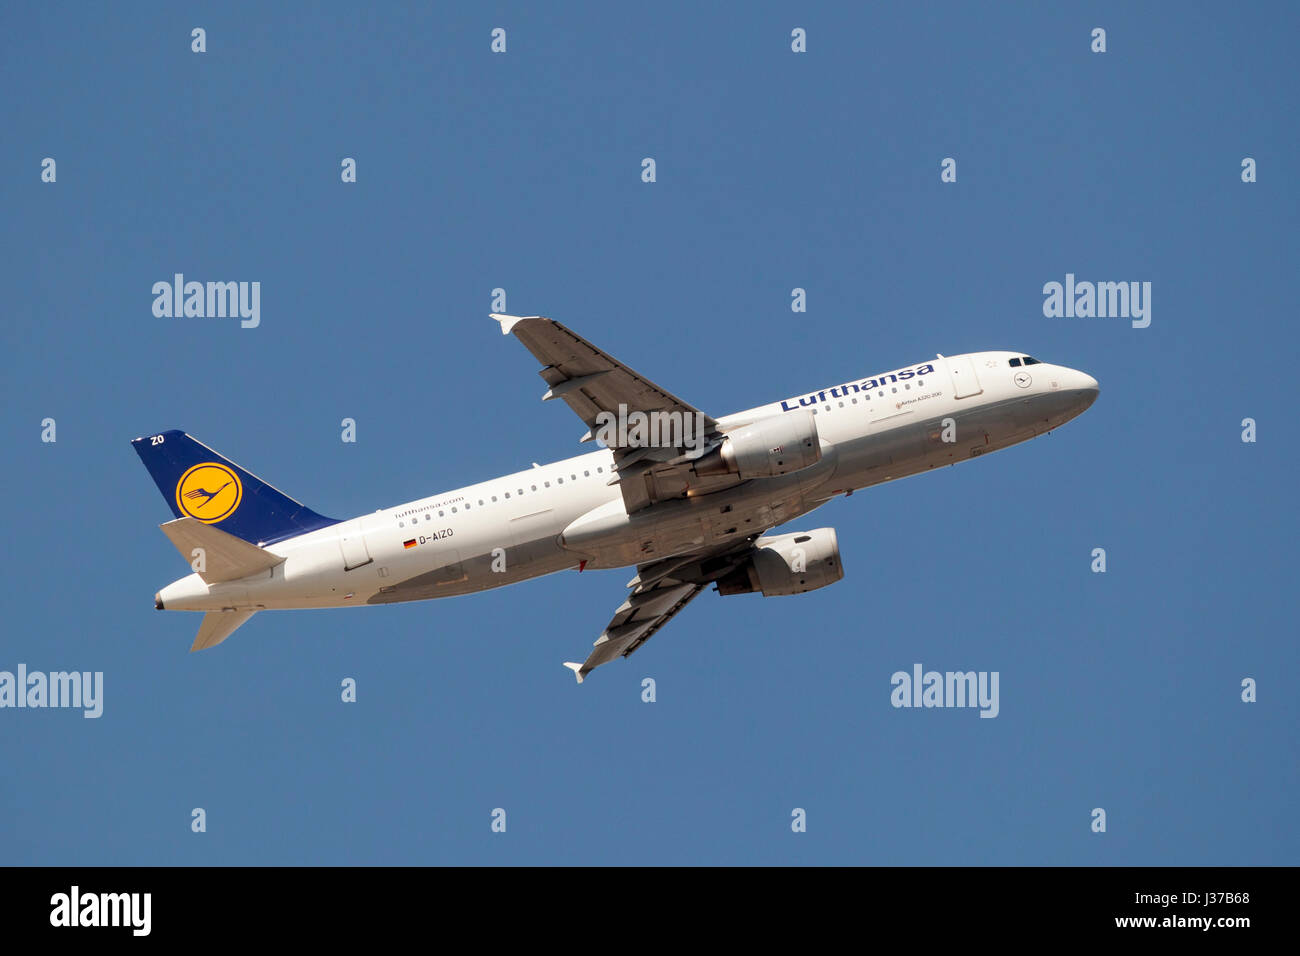 Frankfurt, Germany - March 30, 2017: Lufthansa airlines Airbus A320-200 after take off at the Frankfurt international - Stock Image